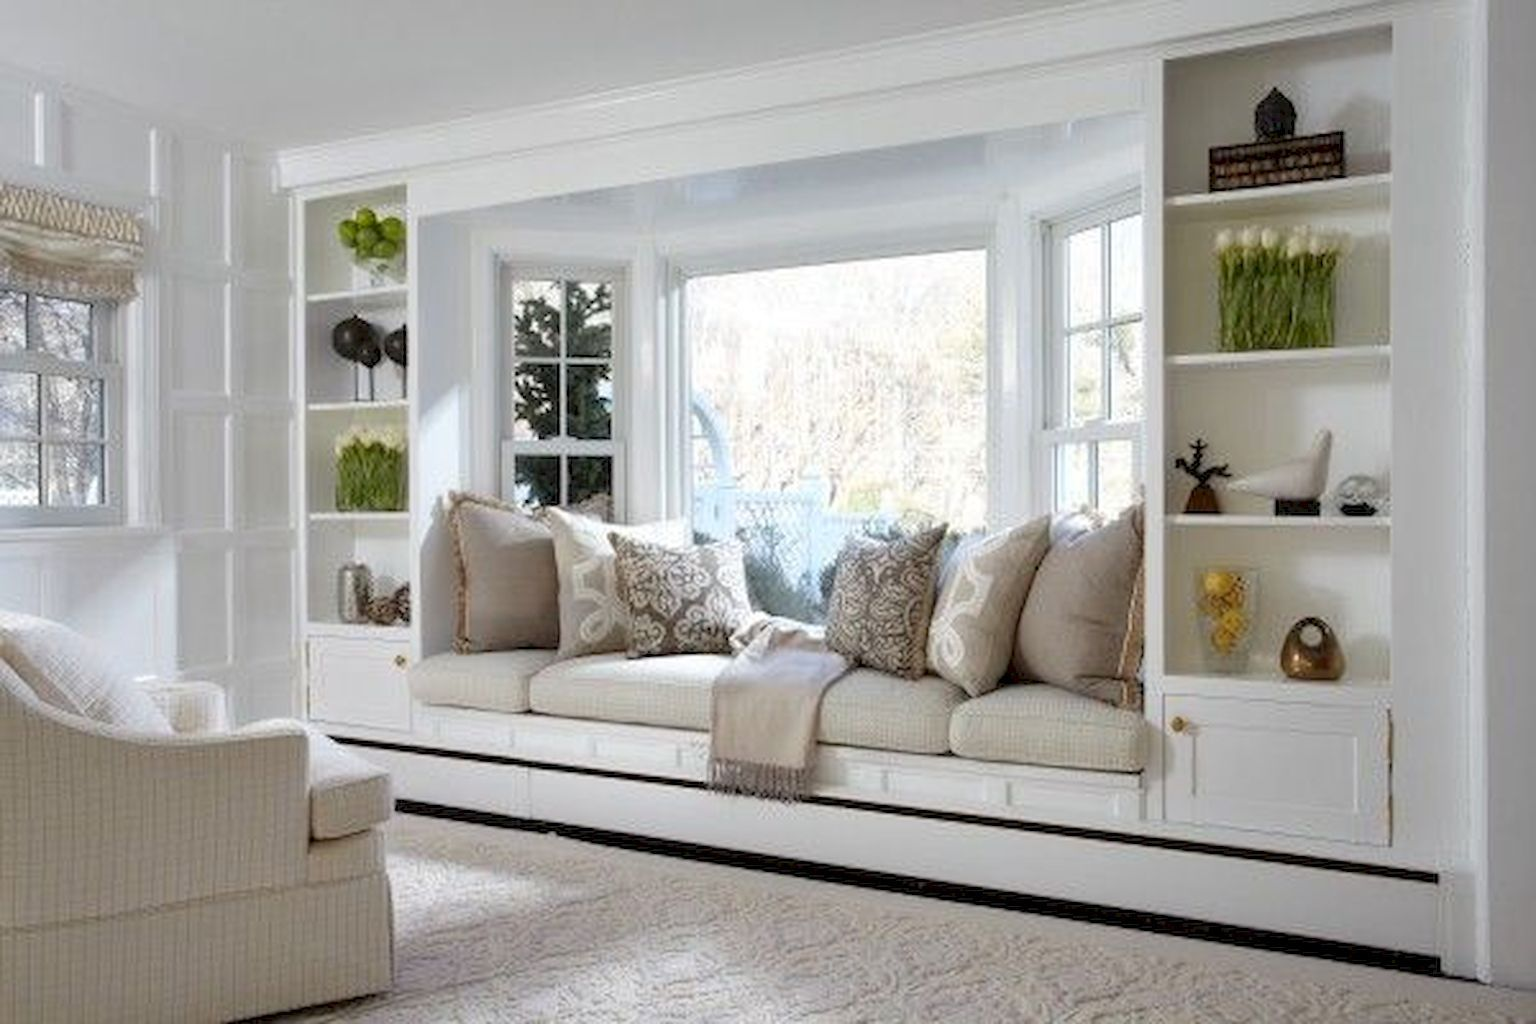 Bay Window Seating With Storage And Book Shelf Part 28 Living